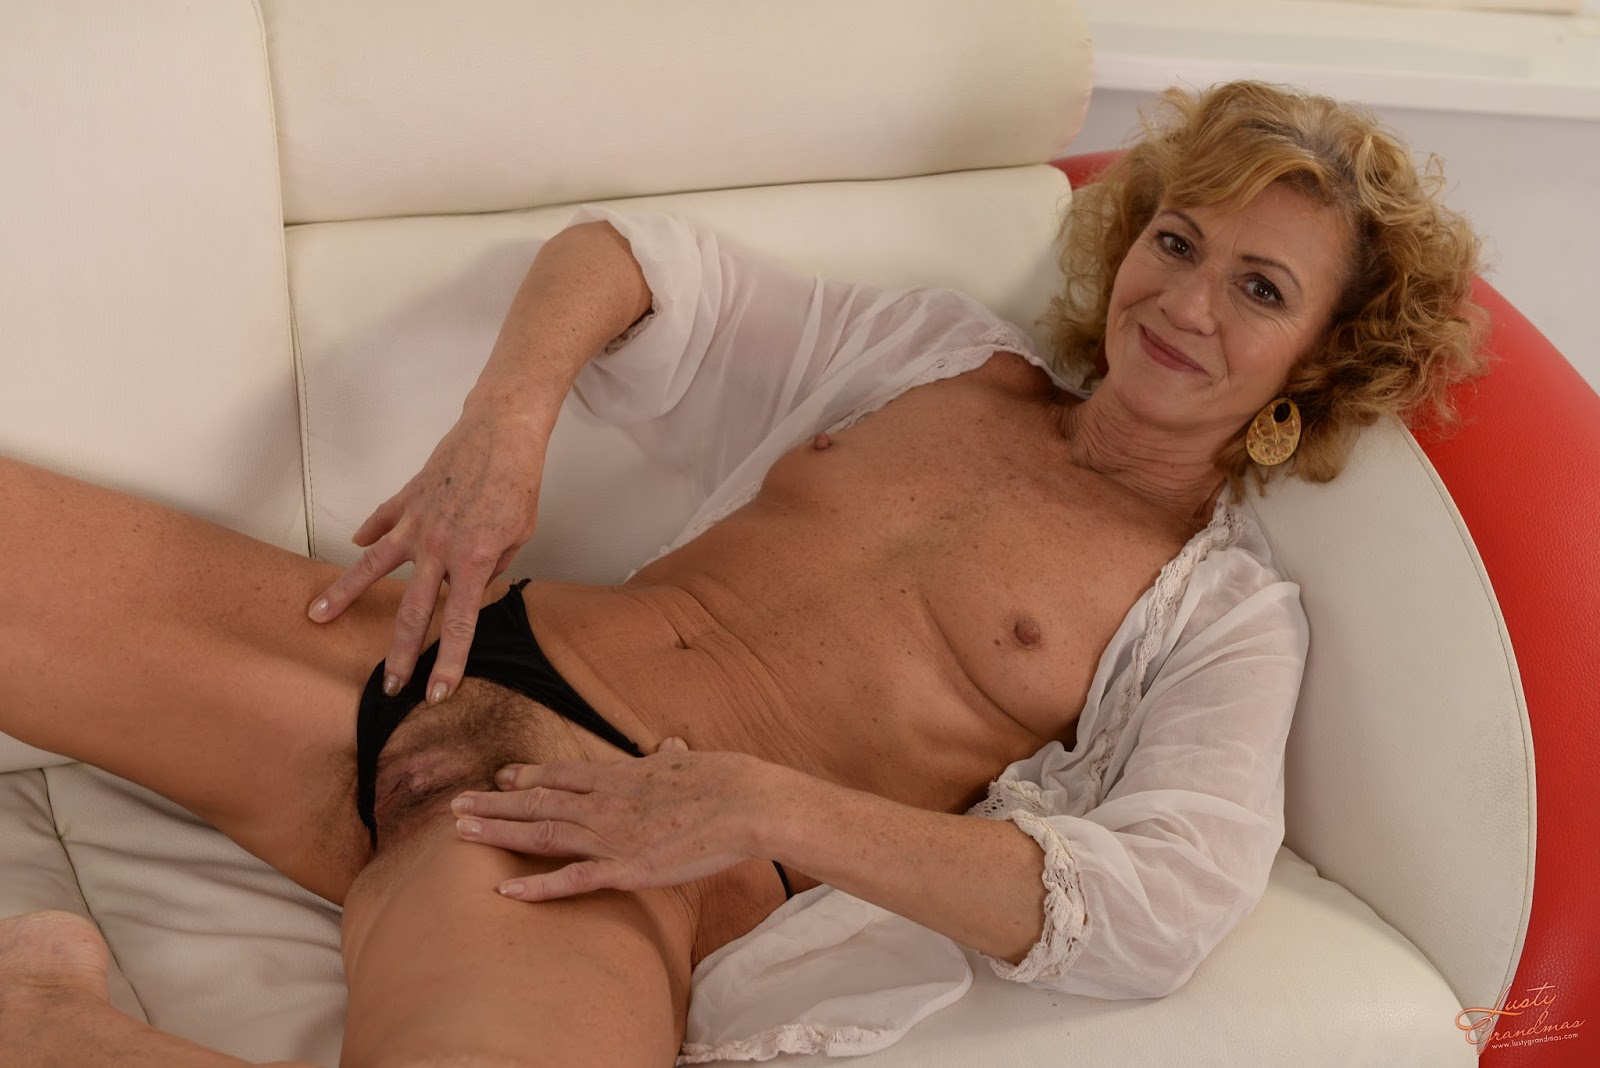 Hot milf housewife sex